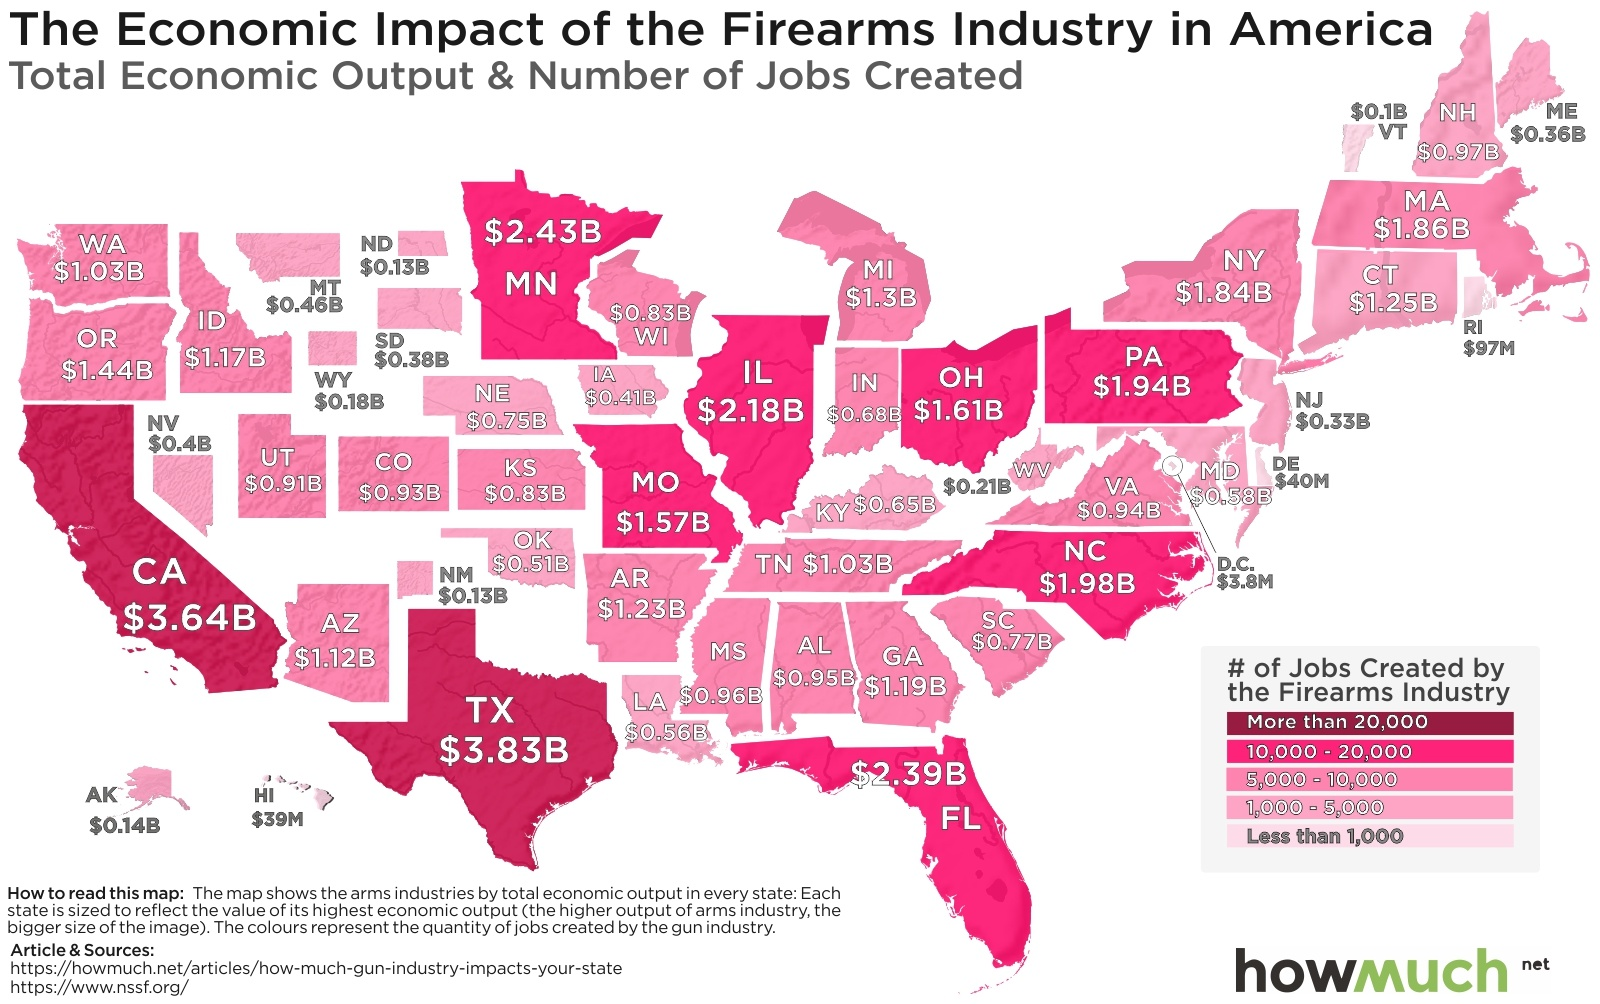 Gun Friendly States Map The Gun Industry's Economic Impact in One Map